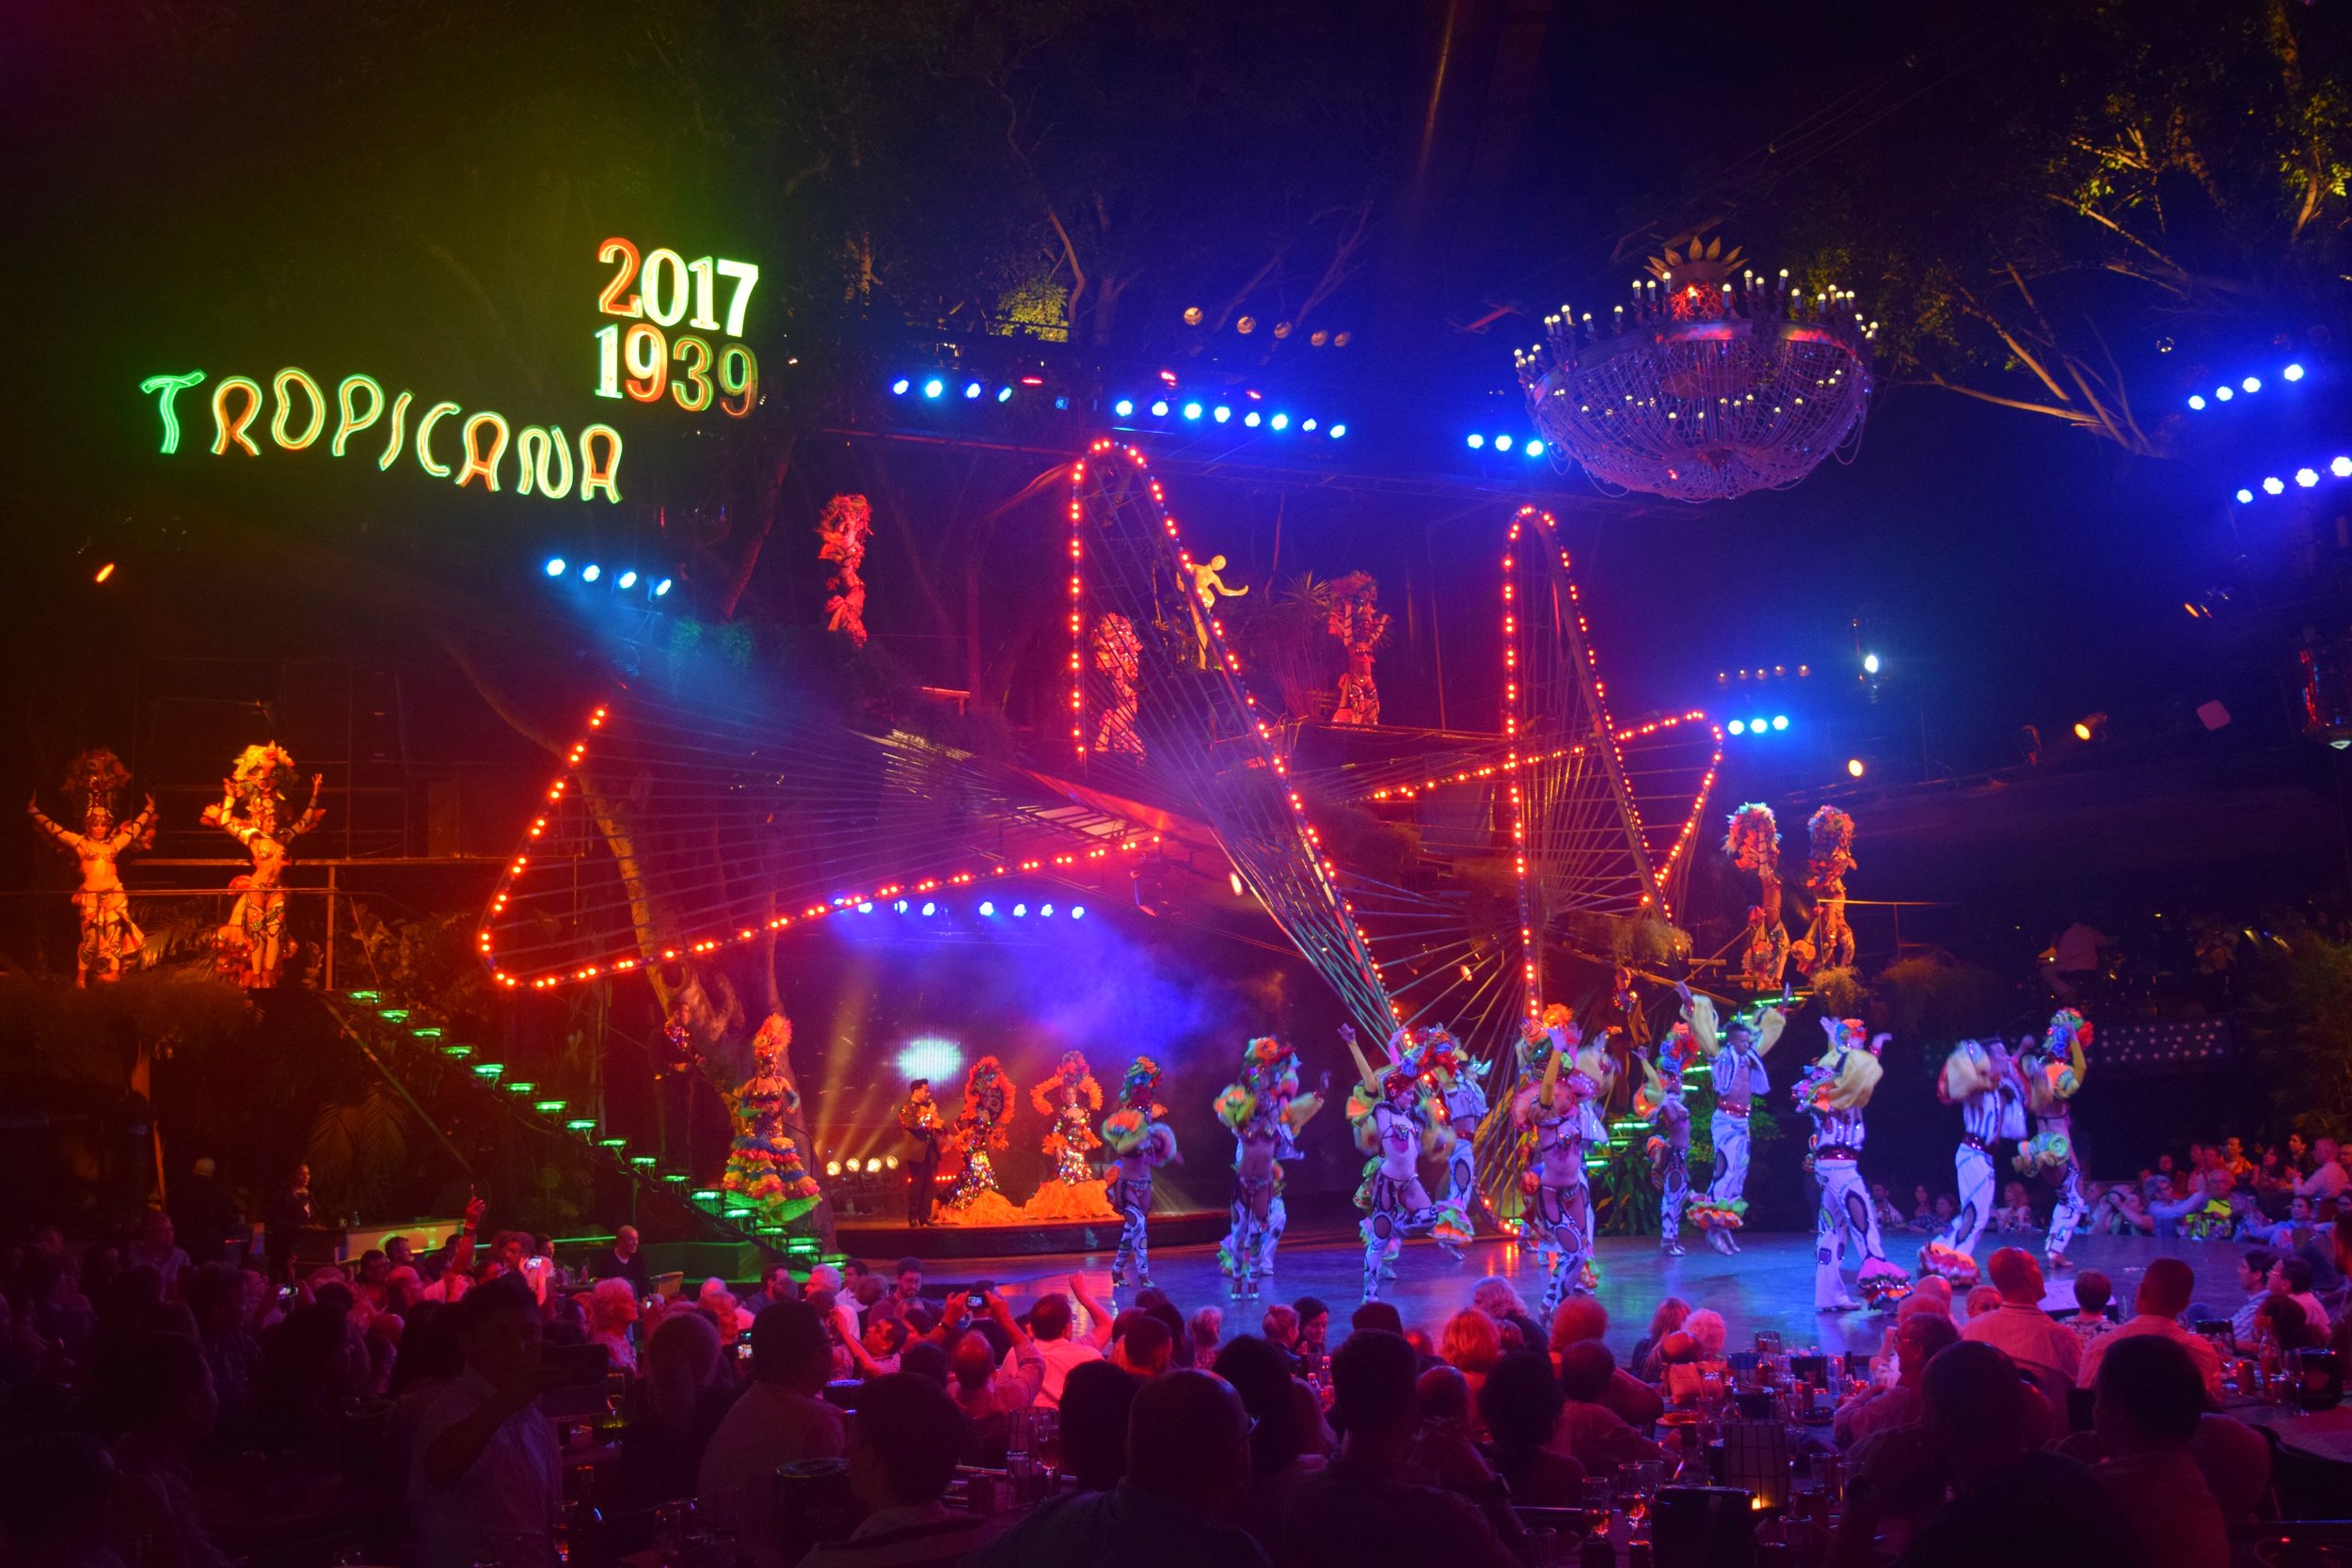 The best show to attend in Cuba - The Tropicana! Worth the price! -  Tessa Juliette | http://travelwheretonext.com/cuba